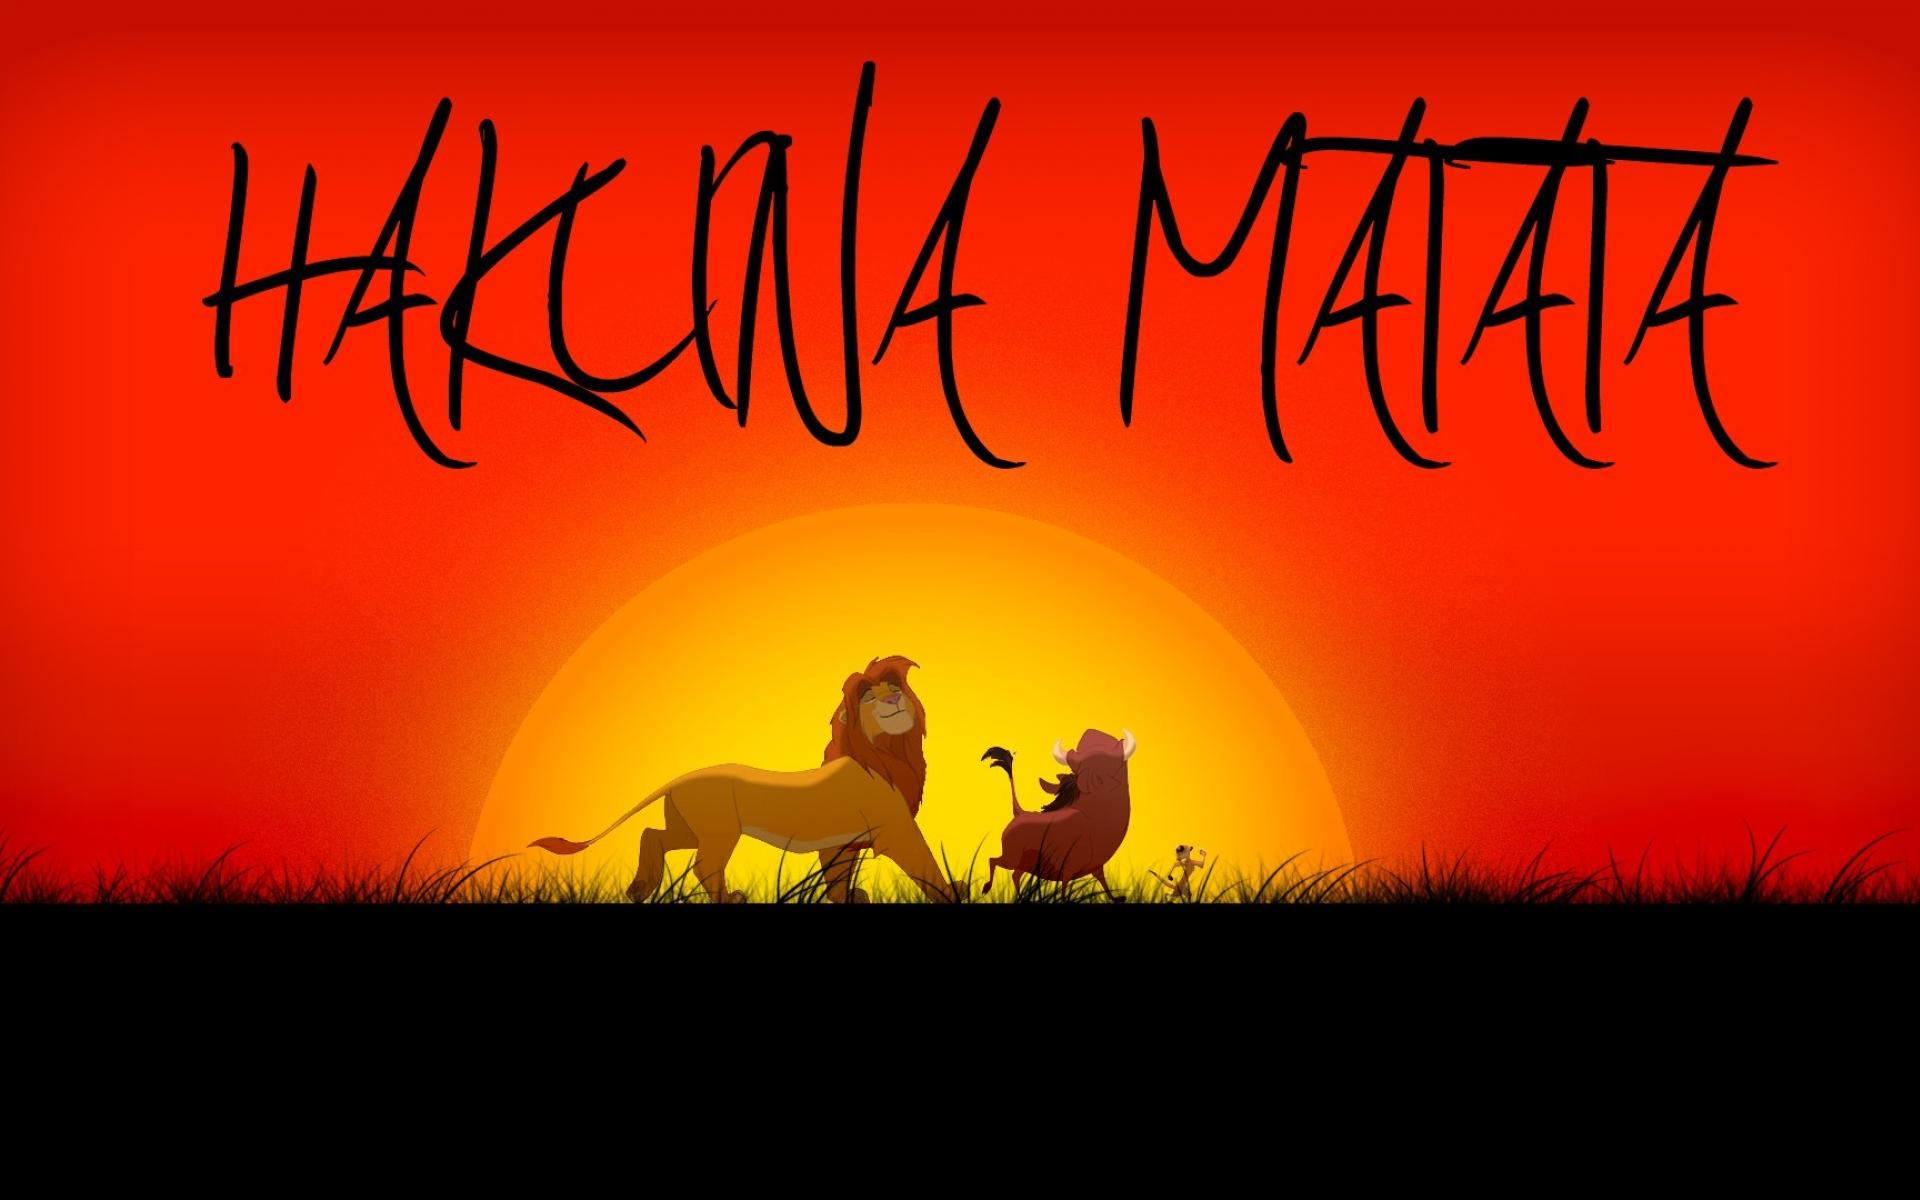 Hakuna matata pumba the lion king timon wallpaper 141326 1920x1200